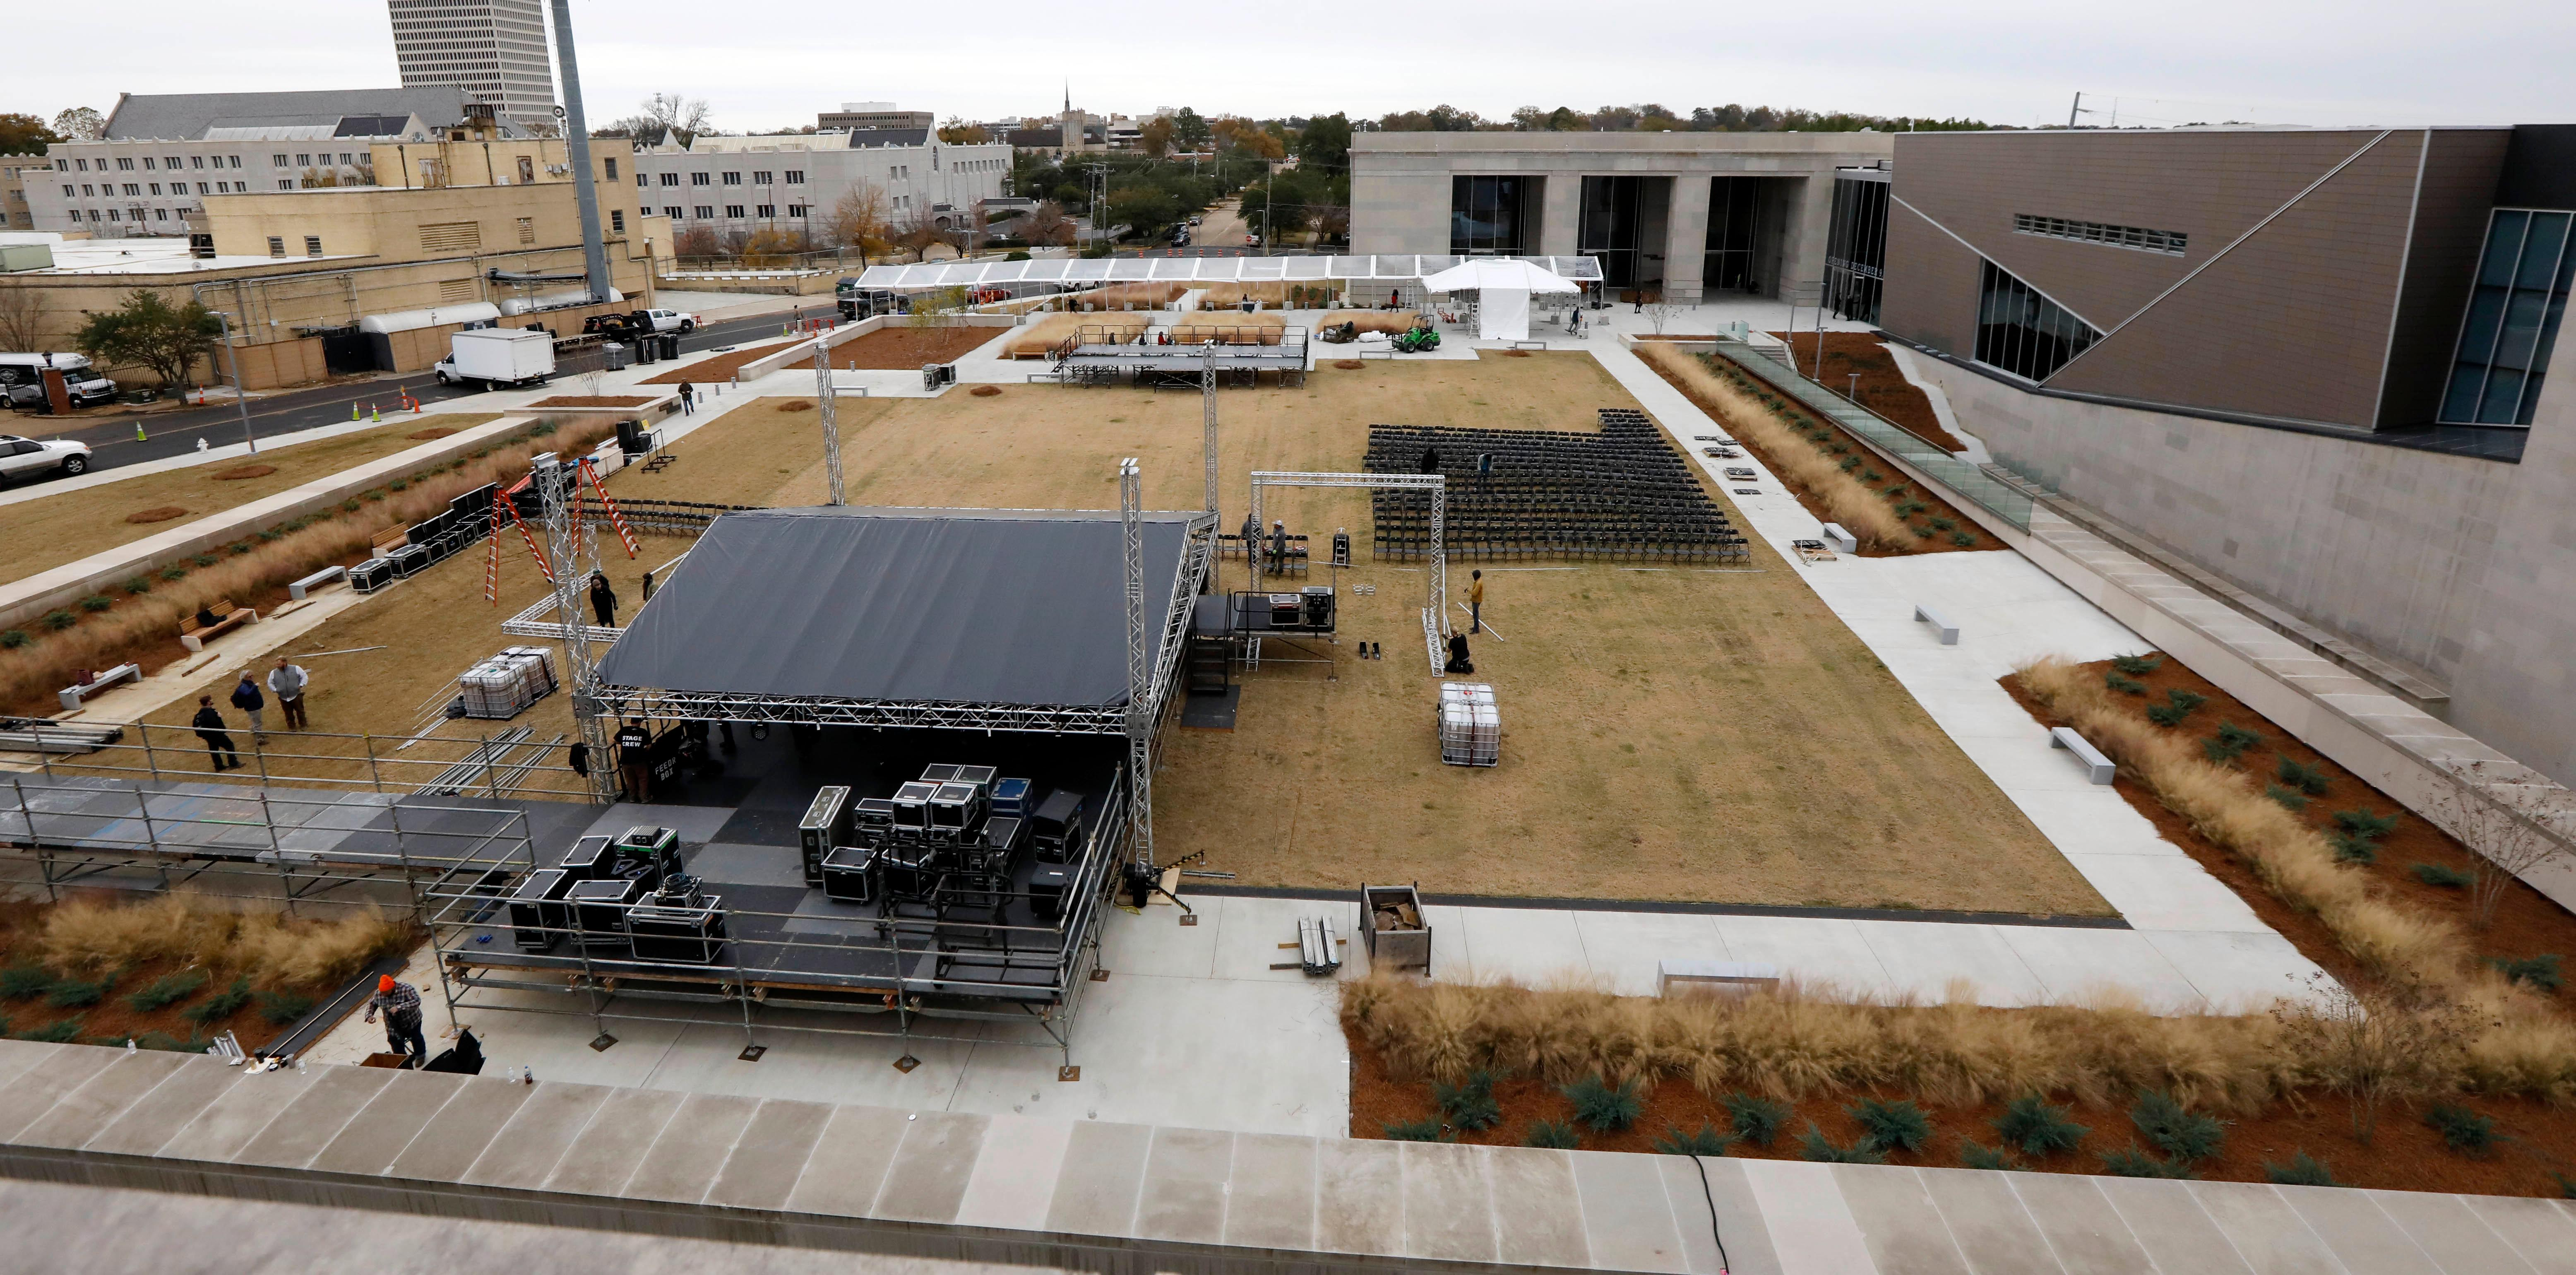 Work crews rush to set up a stage beside the state's two newest museums, the Museum of Mississippi History and the Mississippi Civil Rights Museum, Thursday, Dec. 7, 2017 in Jackson, Miss. The long-planned Saturday ceremony will mark Mississippi's bicentennial of admission into the union, however the appearance of President Donald Trump at the ceremony has drawn the ire of U.S. Reps. John Lewis, D-Ga., and Bennie Thompson, D-Miss., who announced Thursday they won't attend the opening of Mississippi civil rights and history museums. What was intended as a moment of racial unity and atonement in the state with the largest share of African-Americans is descending into racial and partisan strife after Republican Mississippi Gov. Phil Bryant invited fellow Republican Trump to attend. (AP Photo/Rogelio V. Solis)